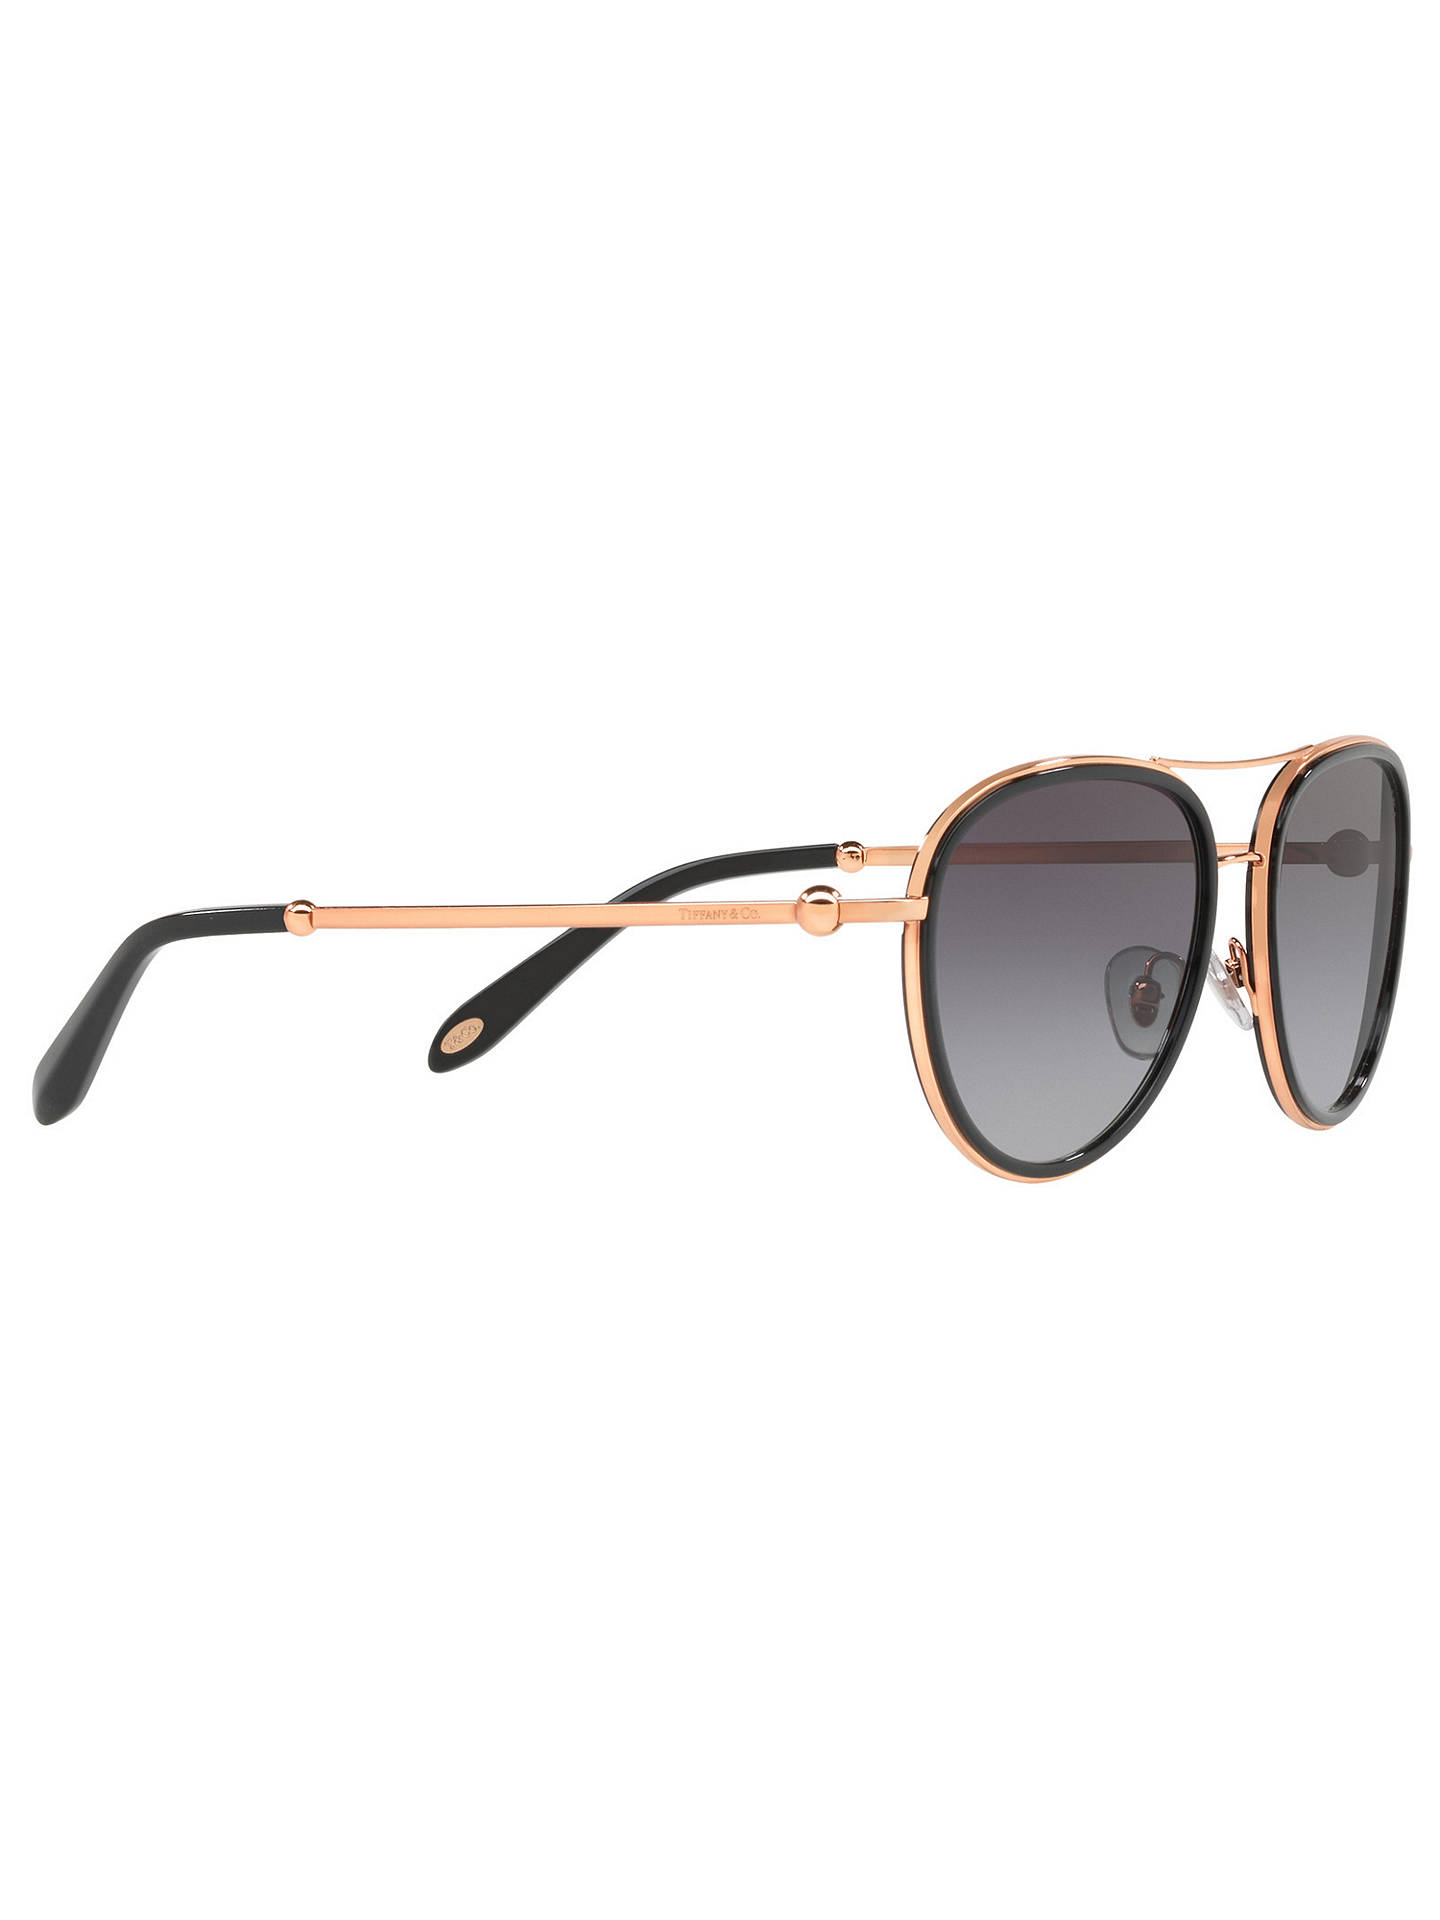 5a4d888bae42 ... Buy Tiffany & Co TF3059 Women's Aviator Sunglasses, Rose Gold/Grey  Gradient Online at